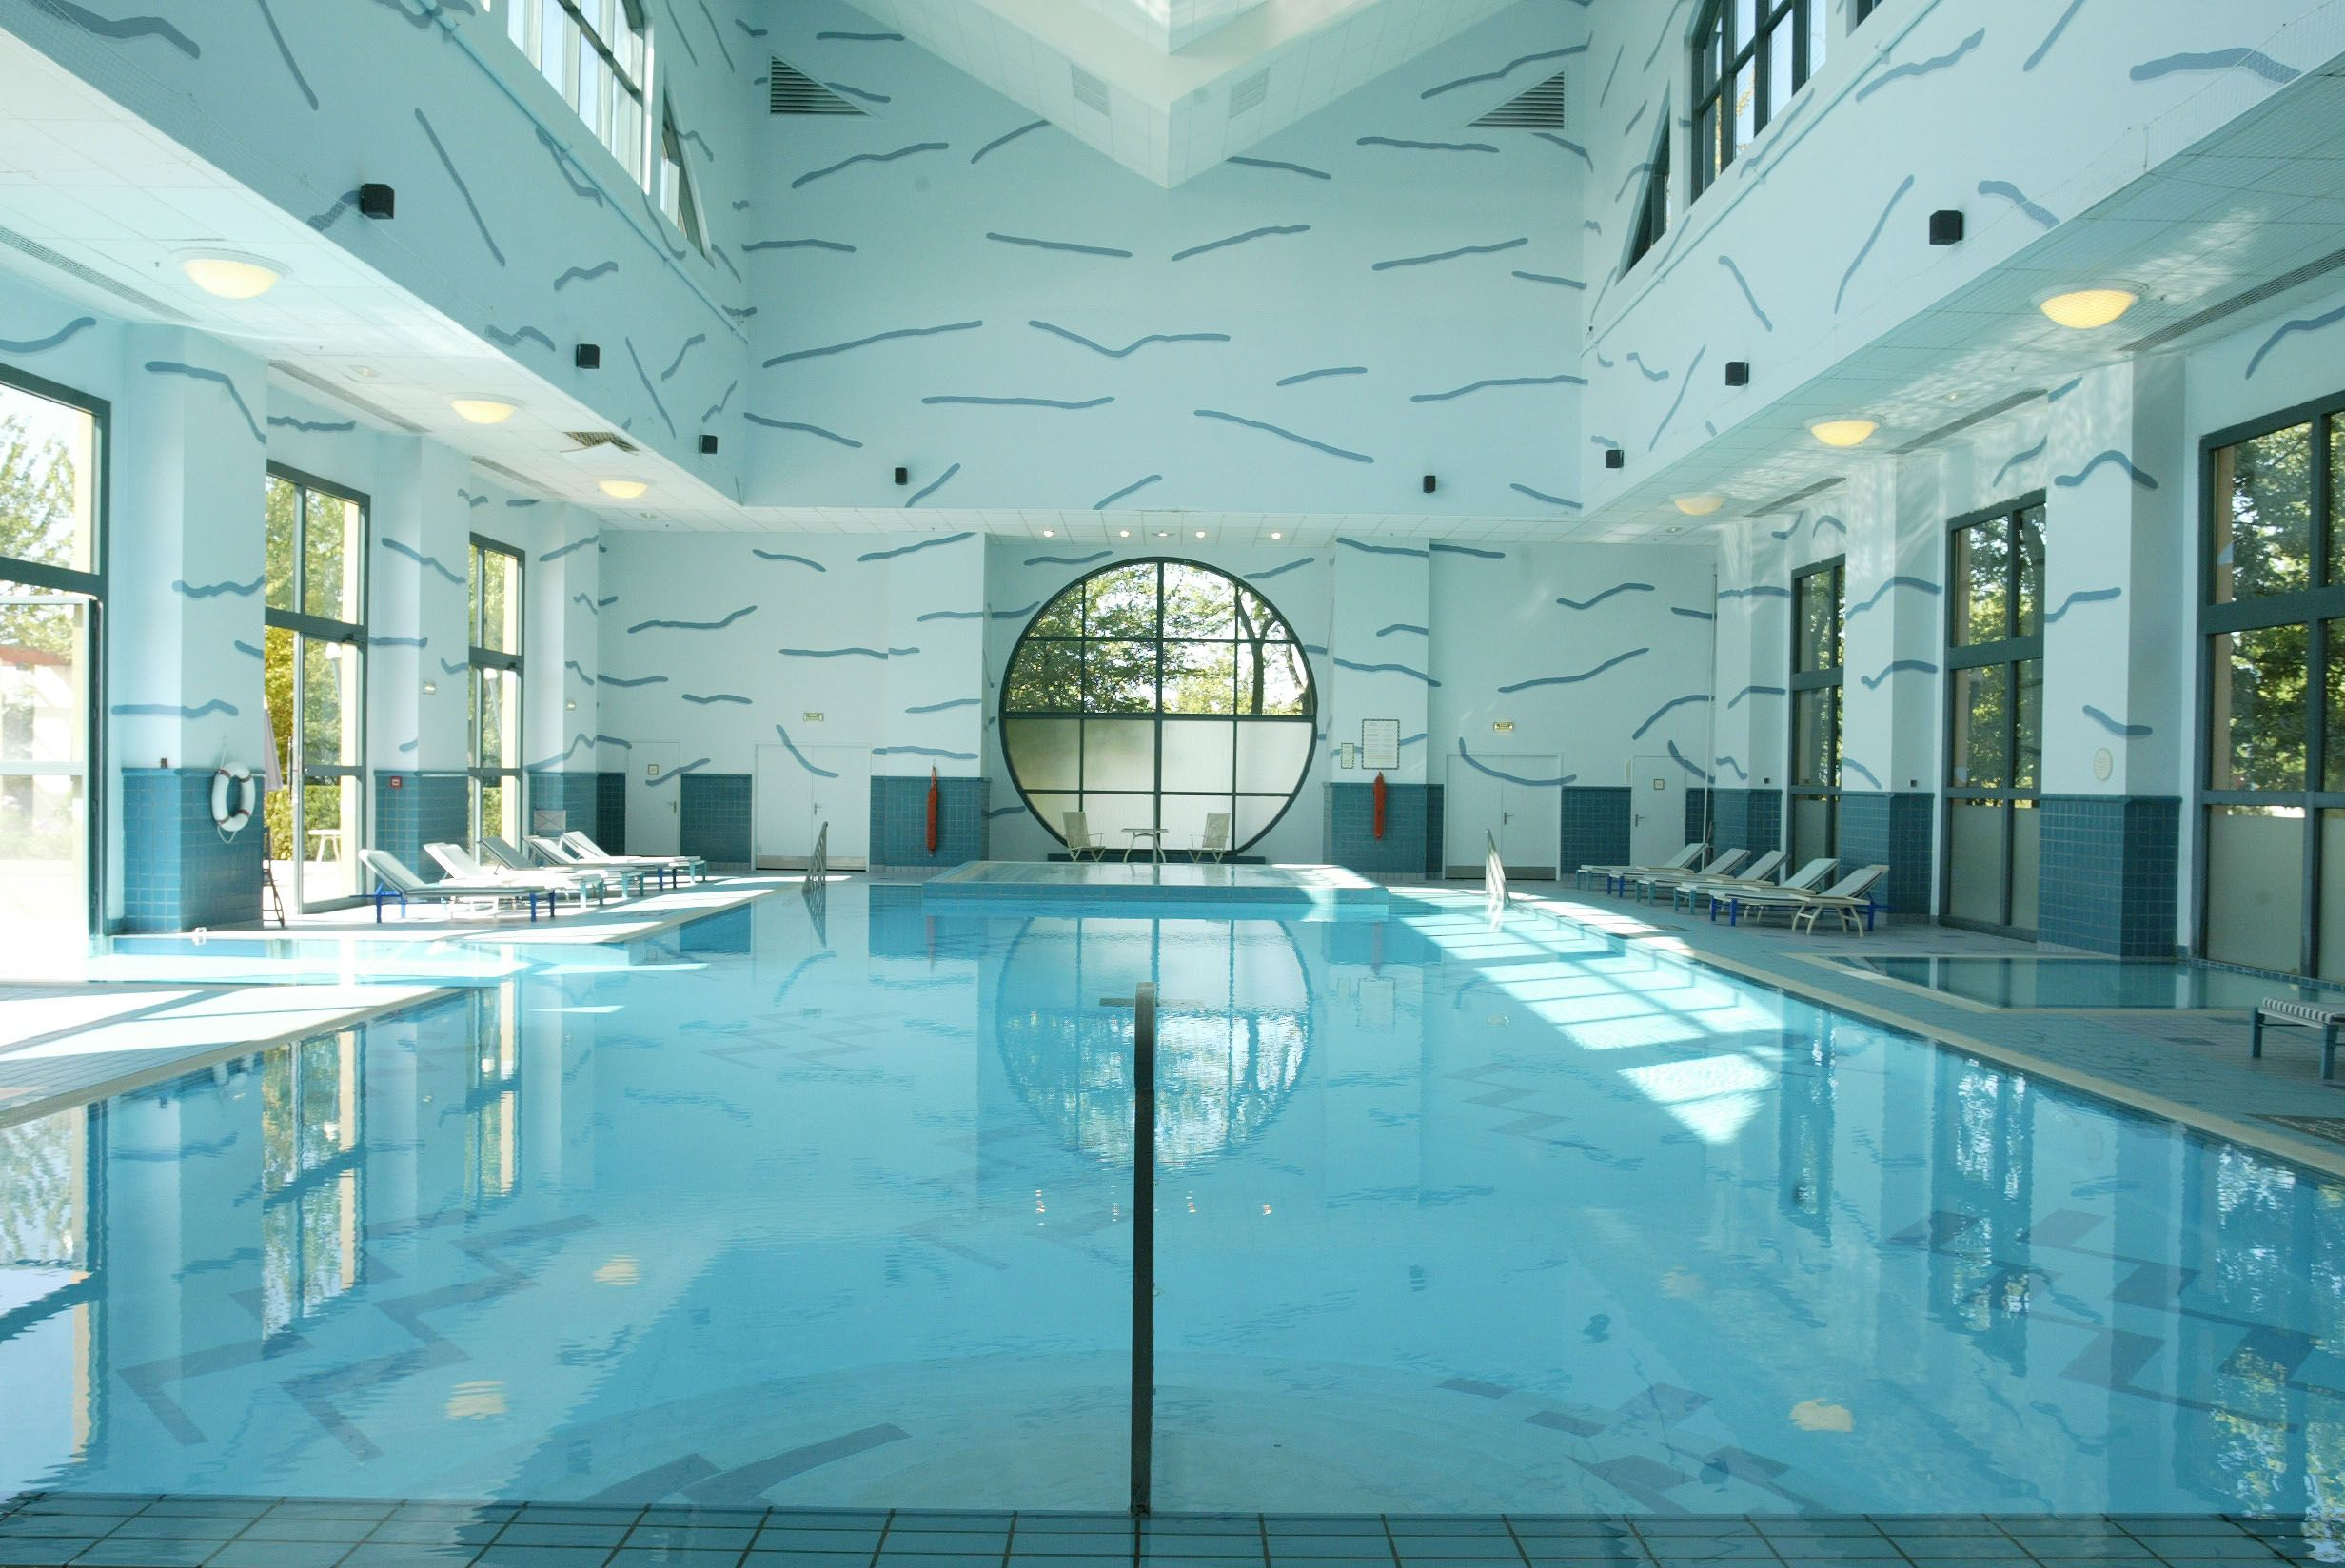 Disney Hotels Hotel New York Indoor Pool Disneyland Paris Disney 39 S Hotel New York